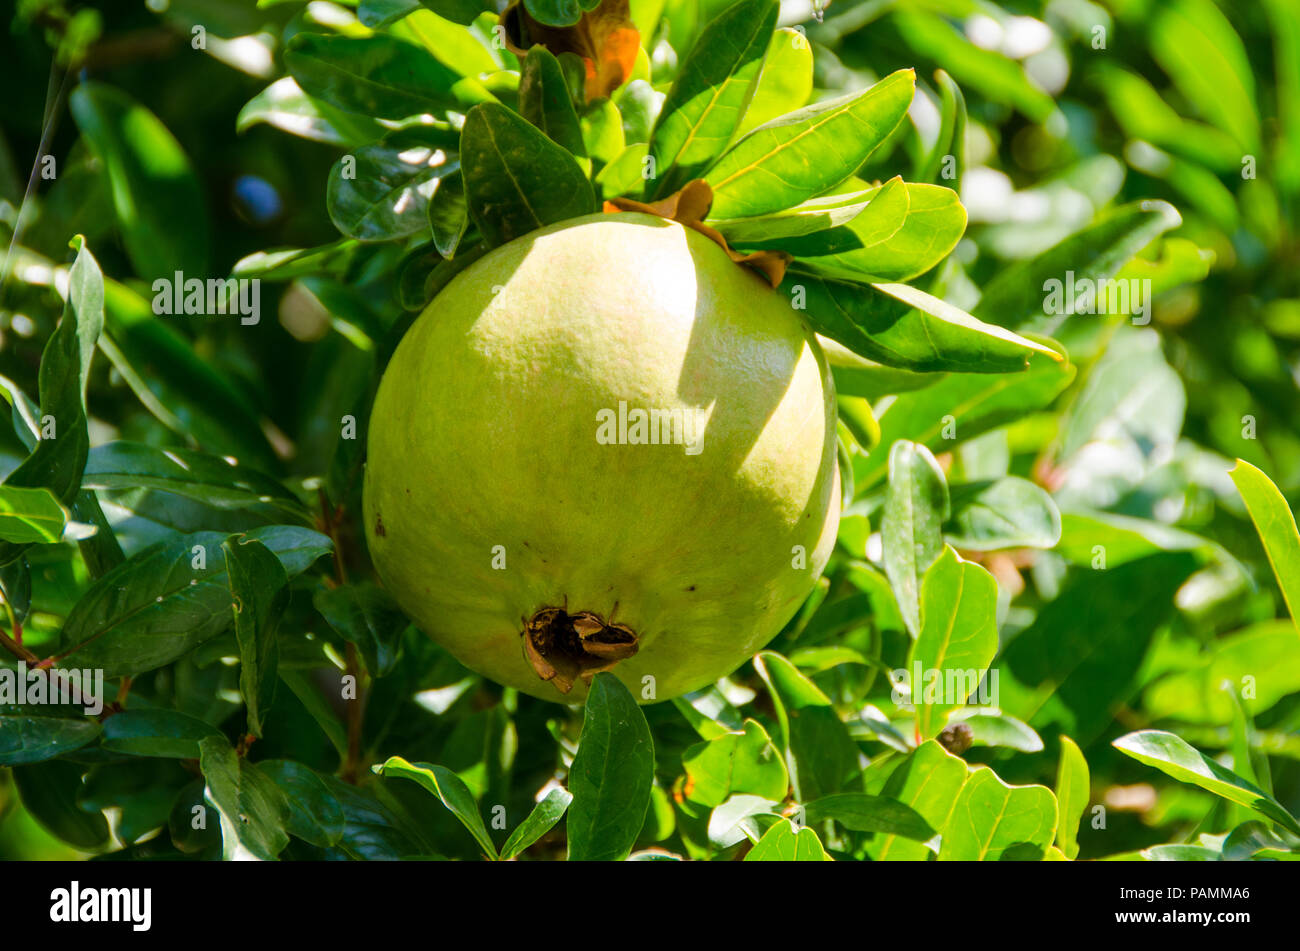 Green pomegrante on a branch with green leaves on the background - Stock Image